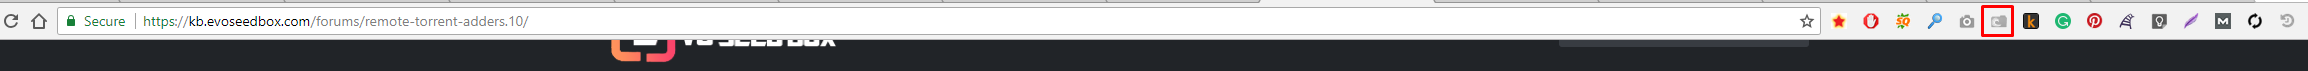 location of remote torrent addder in chrome.png